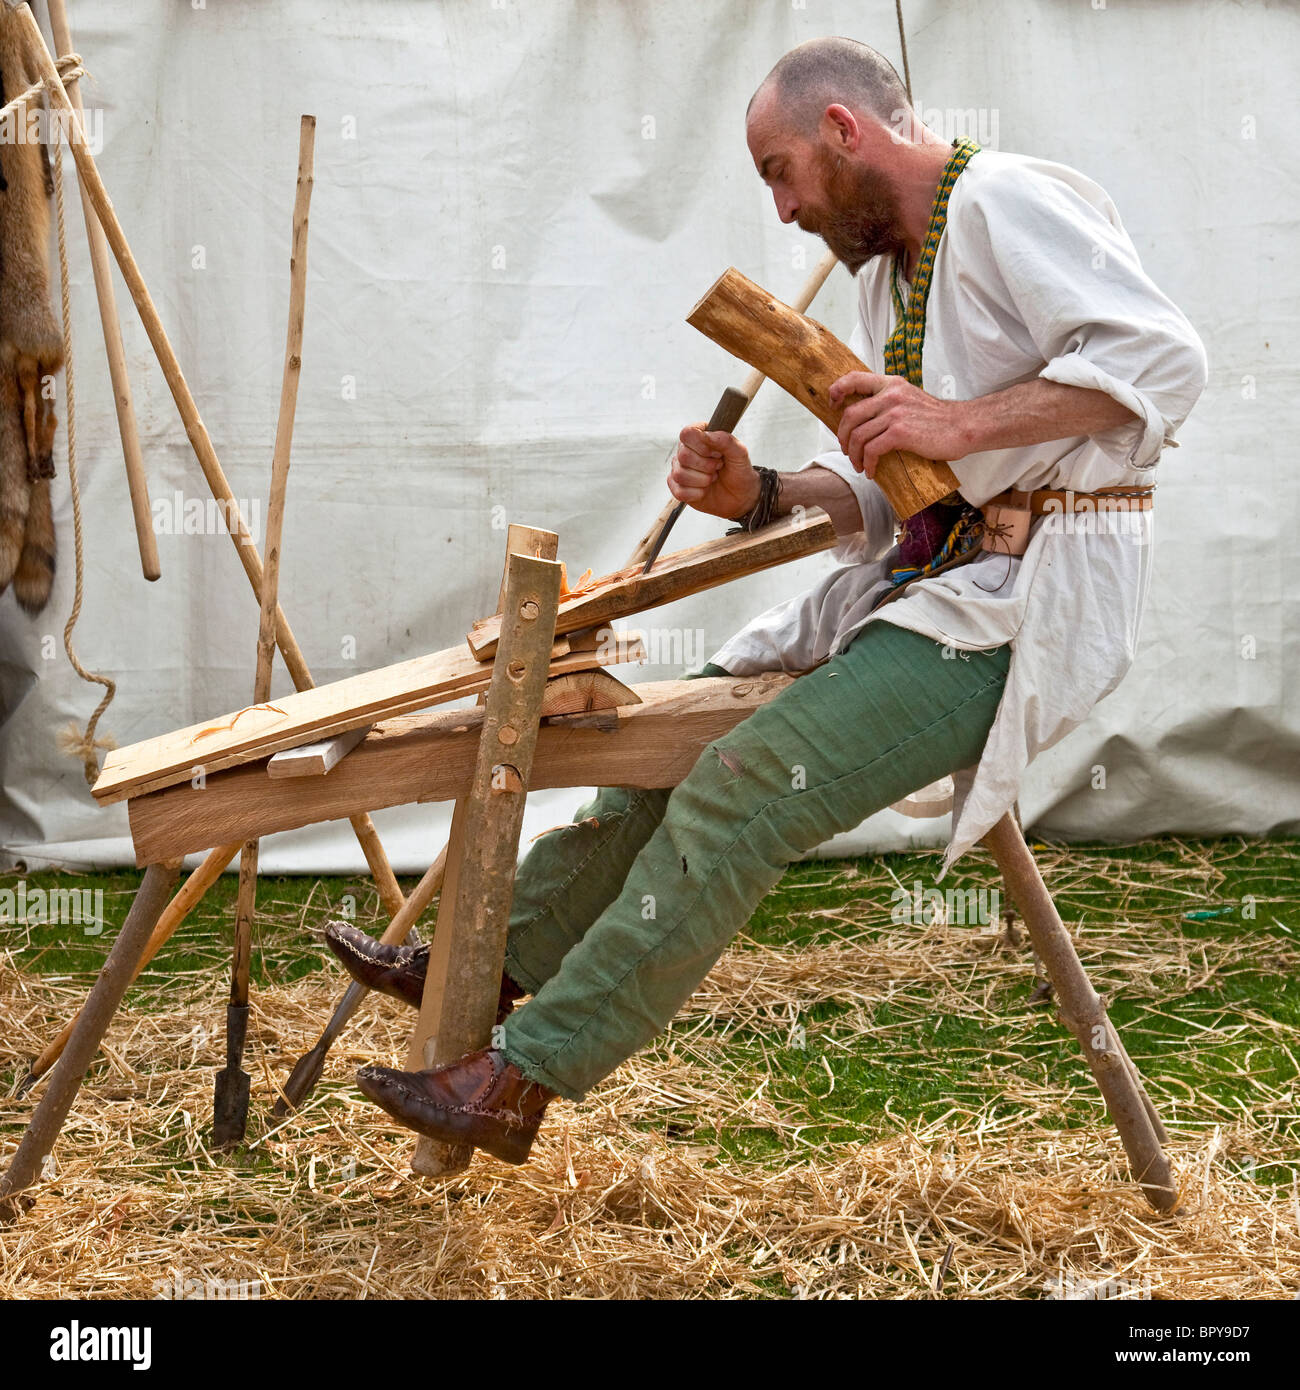 Male re-enactor demonstrating 13th century woodcarving methods at Largs Viking Festival, 2010 - Stock Image